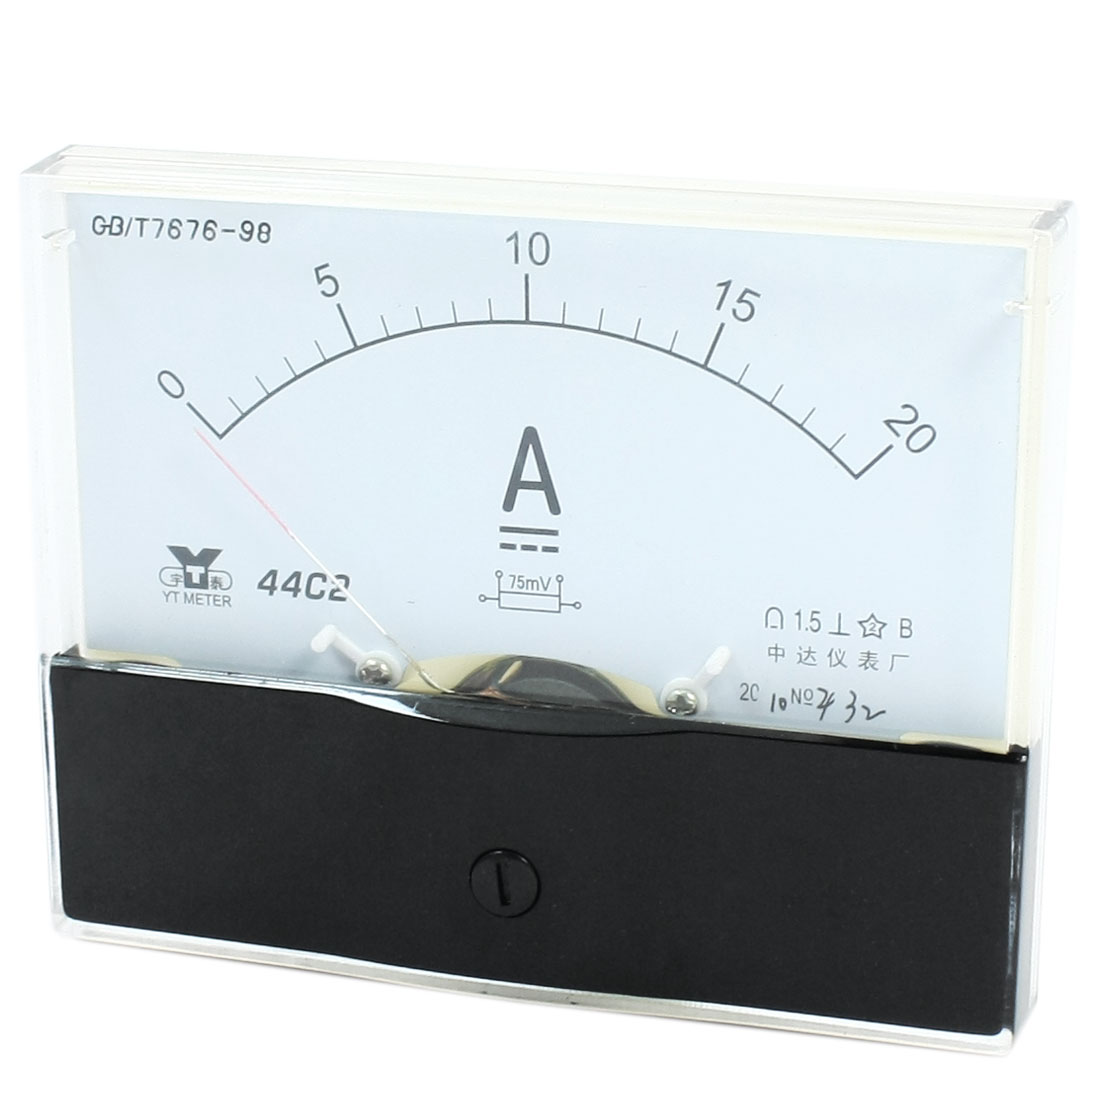 Rectangle Measurement Tool Analog Panel Ammeter Gauge DC 0 - 20A Measuring Range 44C2